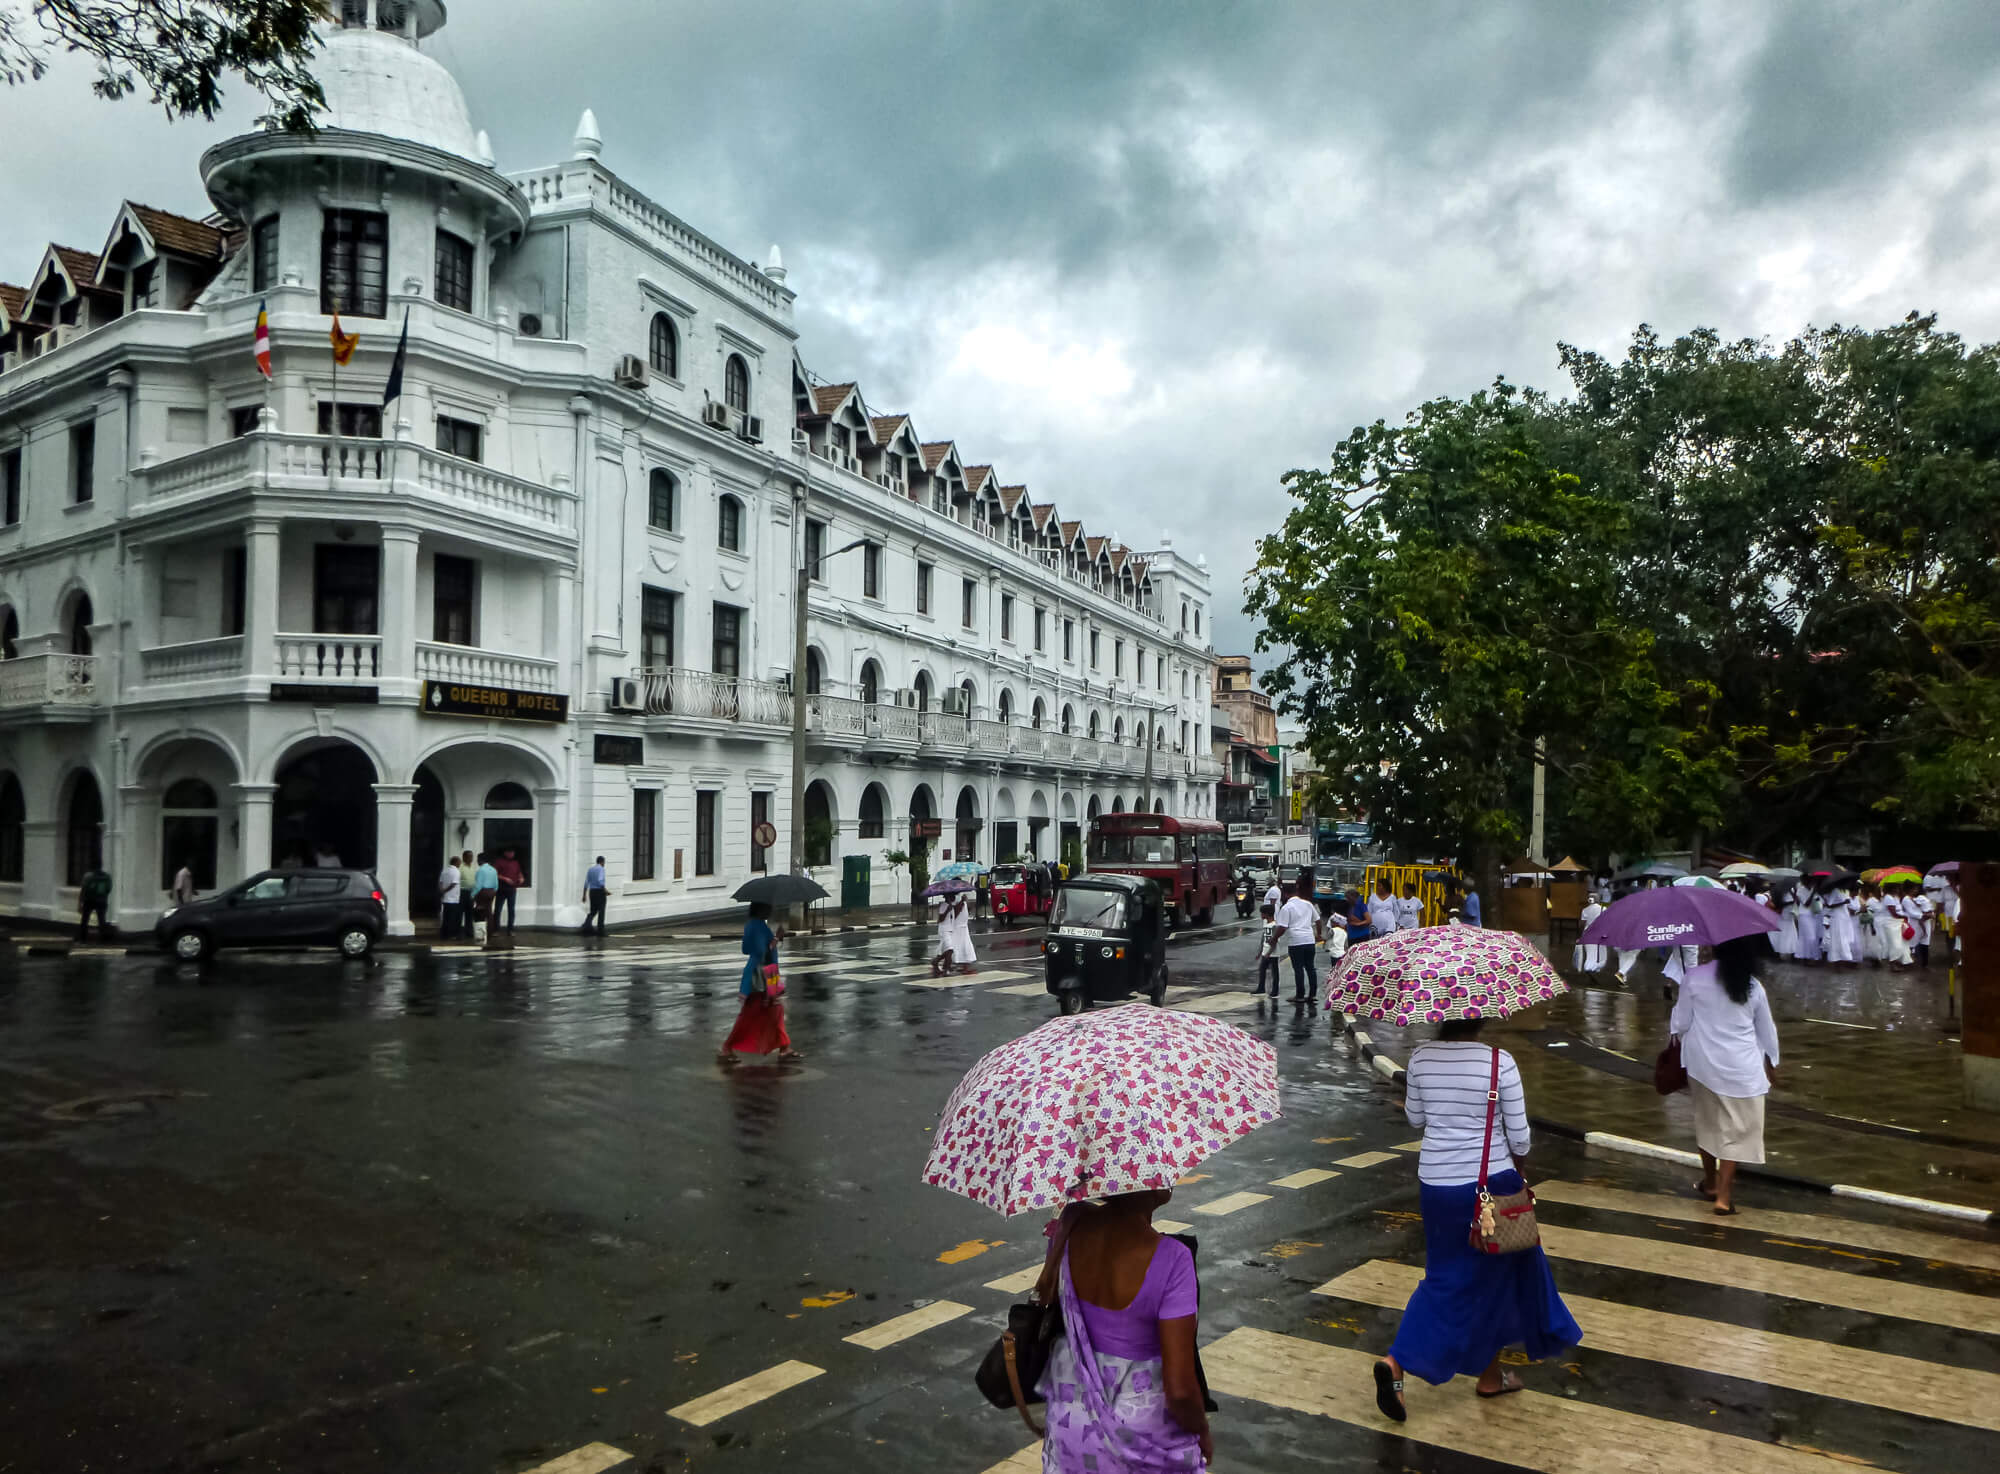 Kandy City Centre - an overlooked destination on a Sri Lanka backpacking itinerary